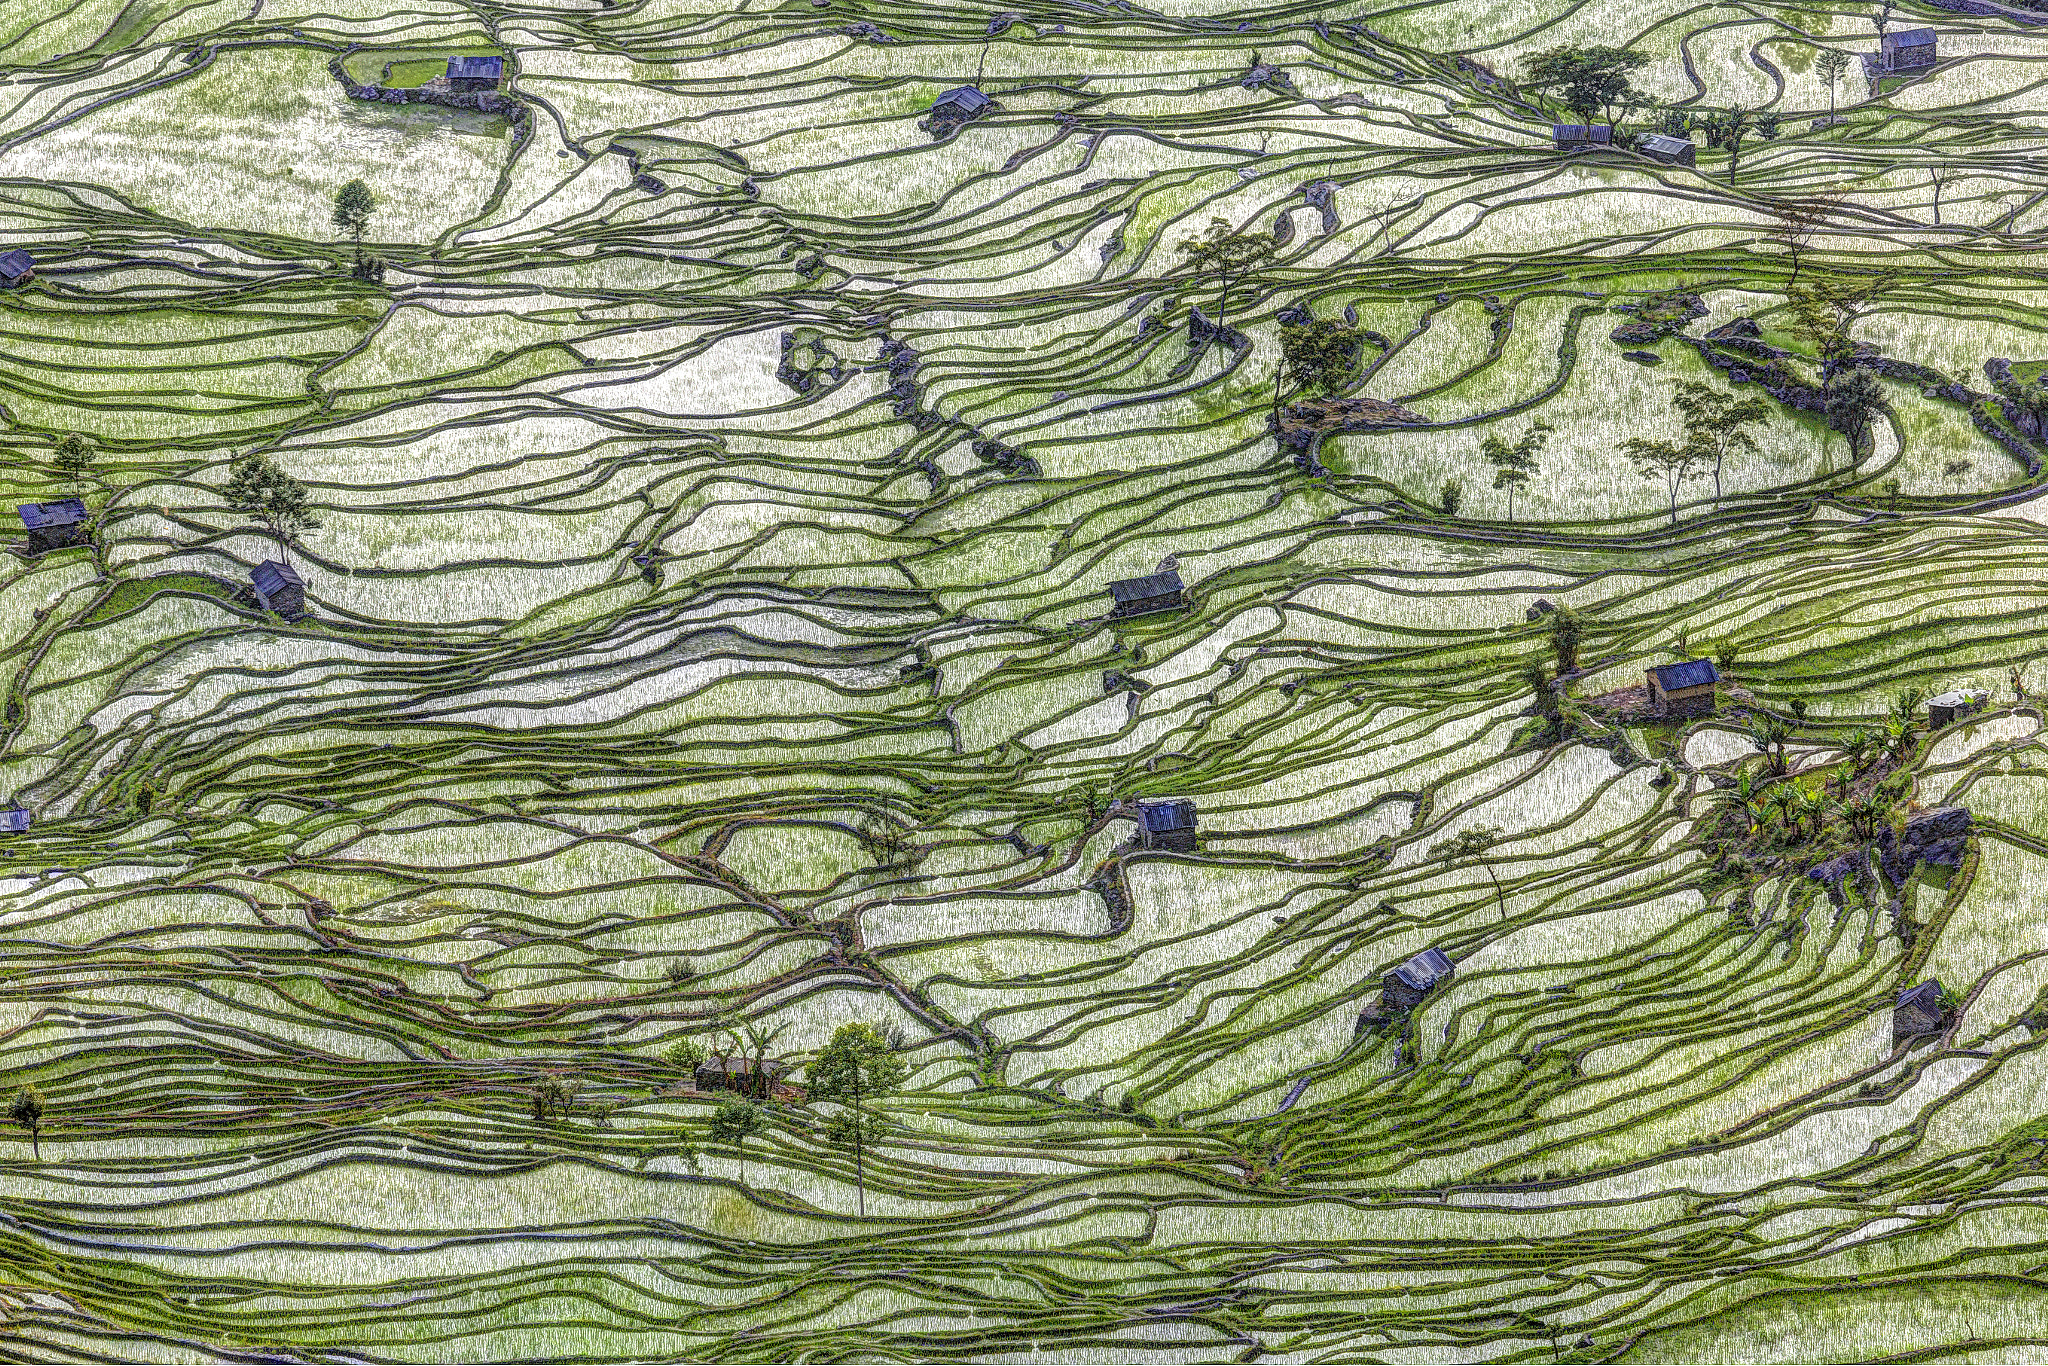 Photograph Ricefield Patterns #5 by Chaluntorn Preeyasombat on 500px